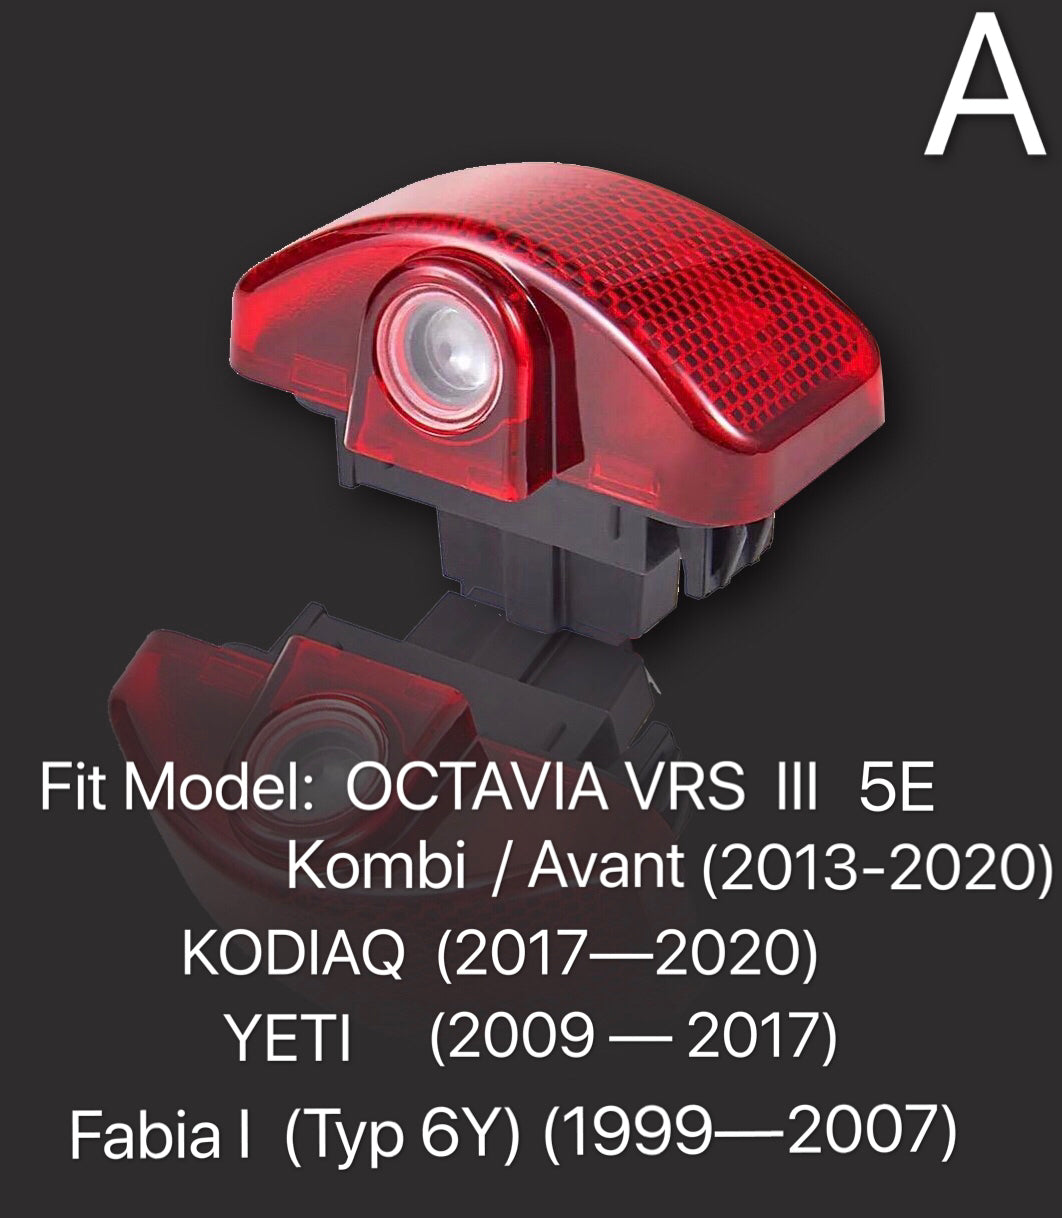 SKODA VRS LOGO PROJECTOT LIGHTS Nr.28(quantity  1 =  2 Logo Film /  2 door lights)